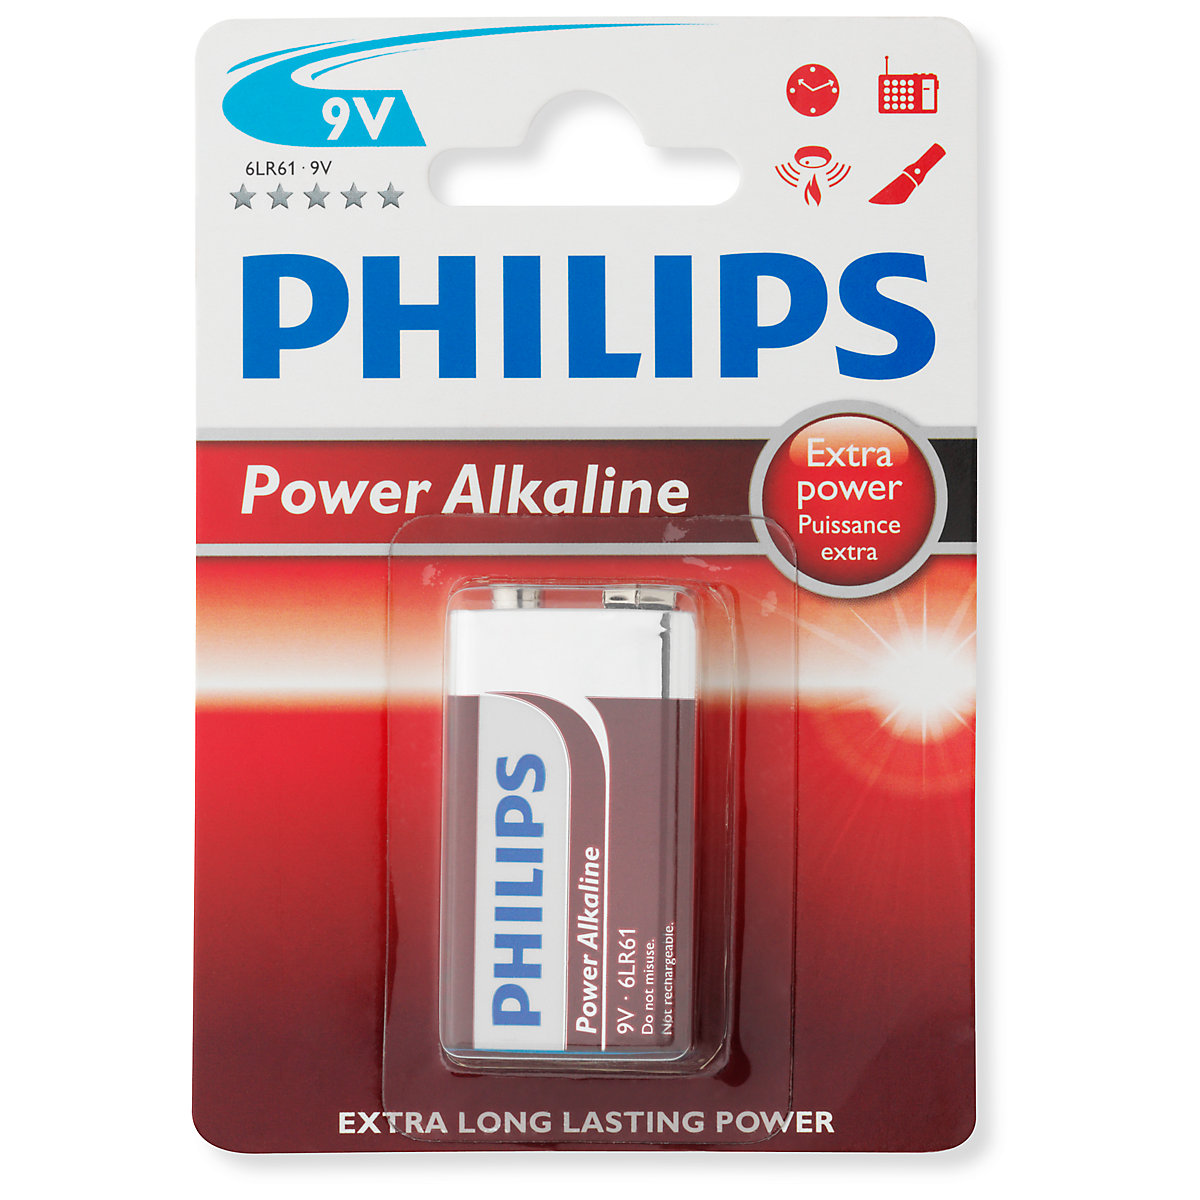 Philips 9V Battery Toy From 8 Years